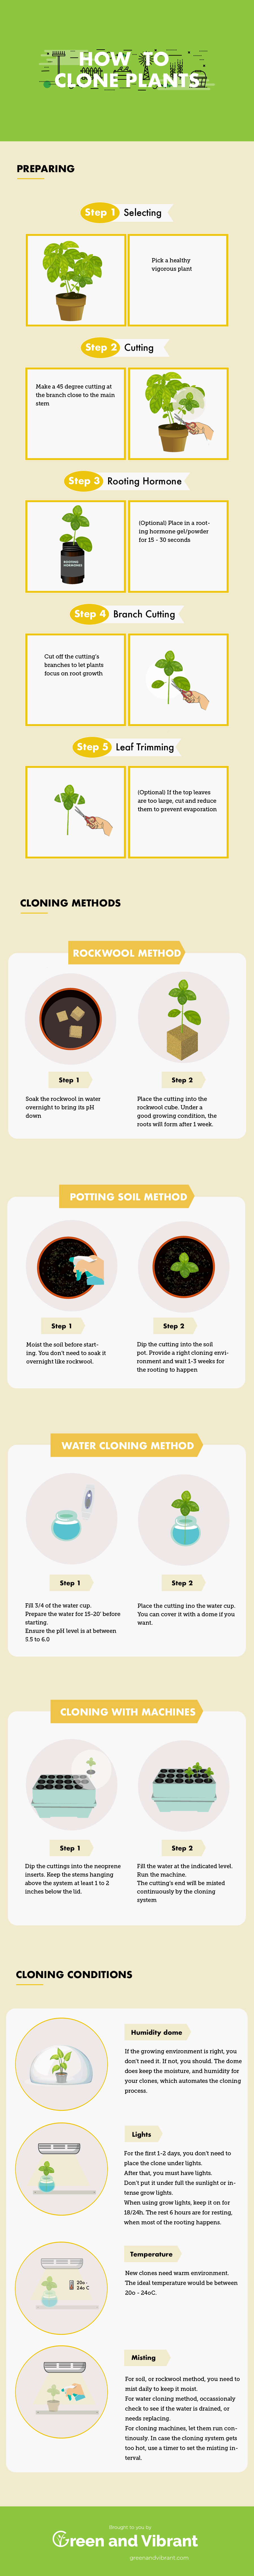 how to clone plants infographic